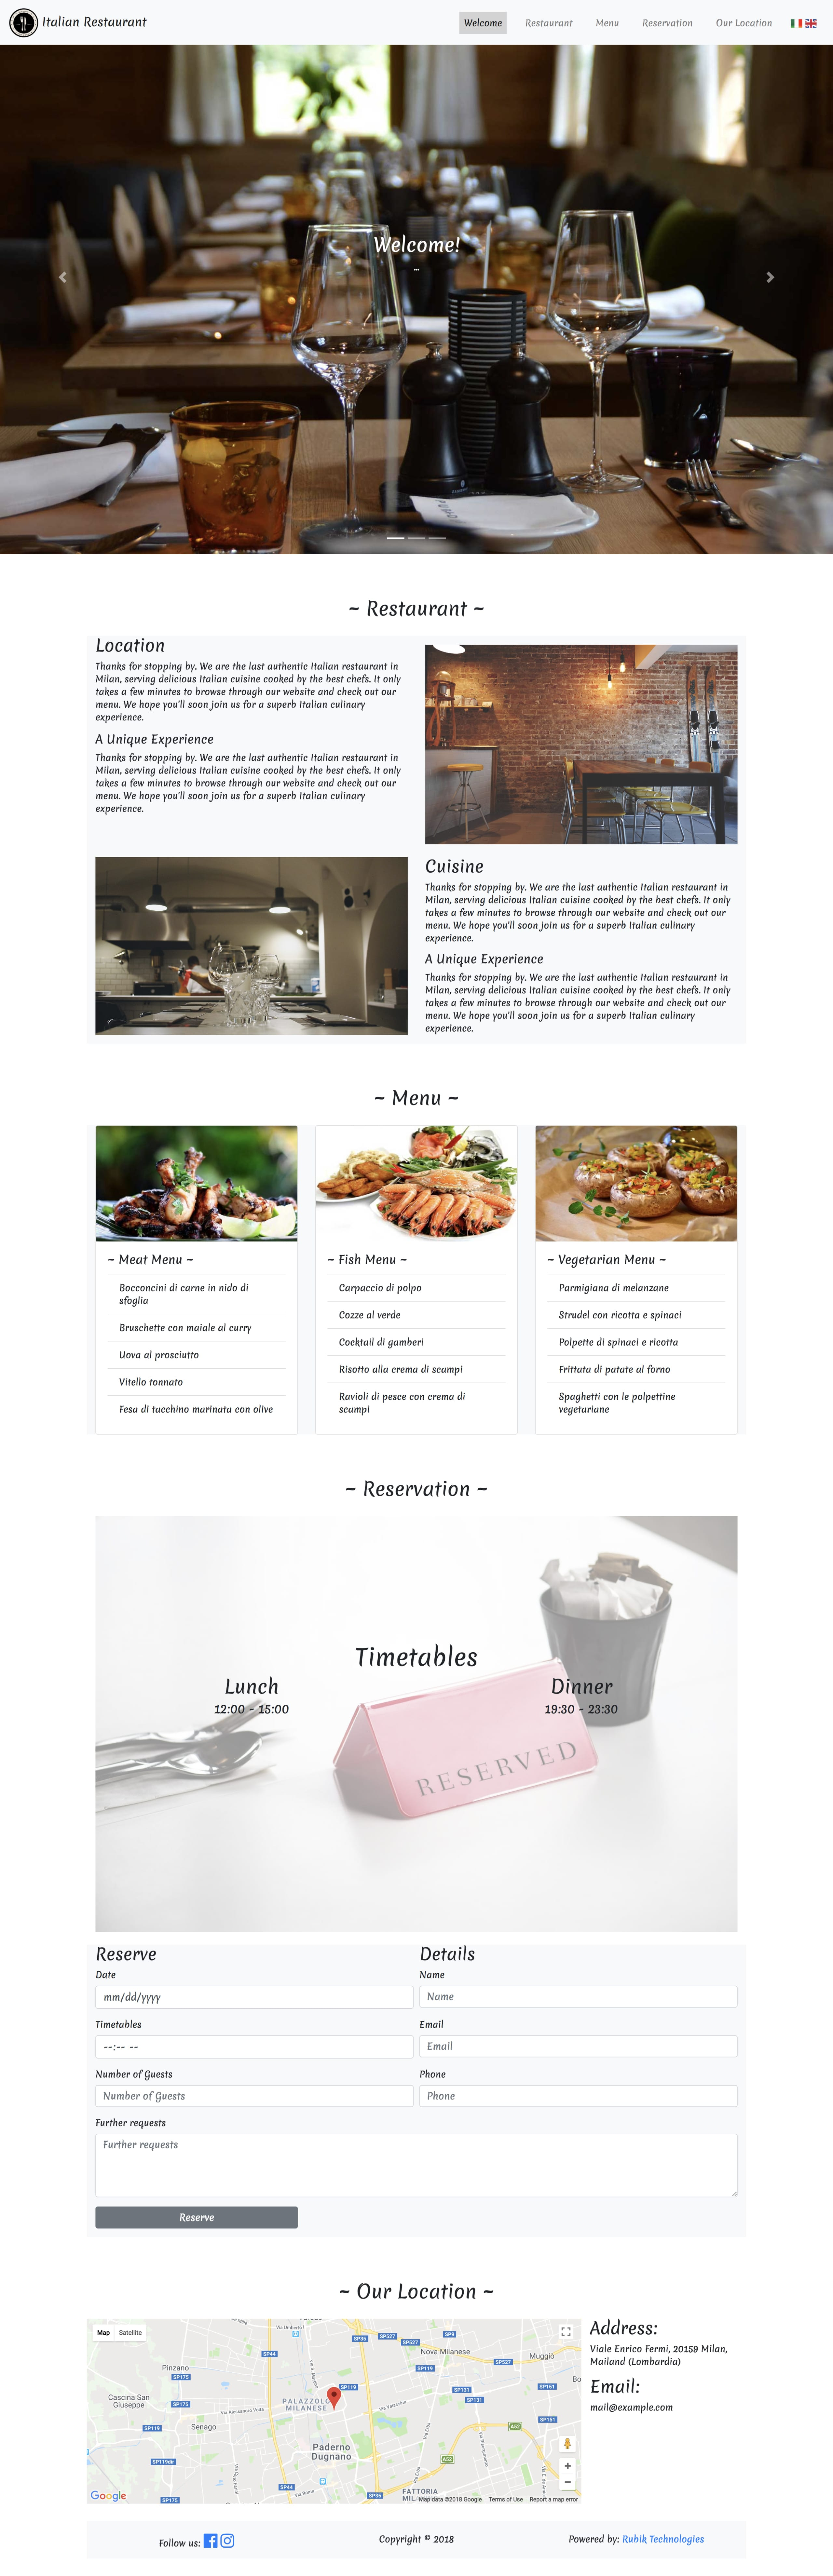 Ristorante Website Screenshot